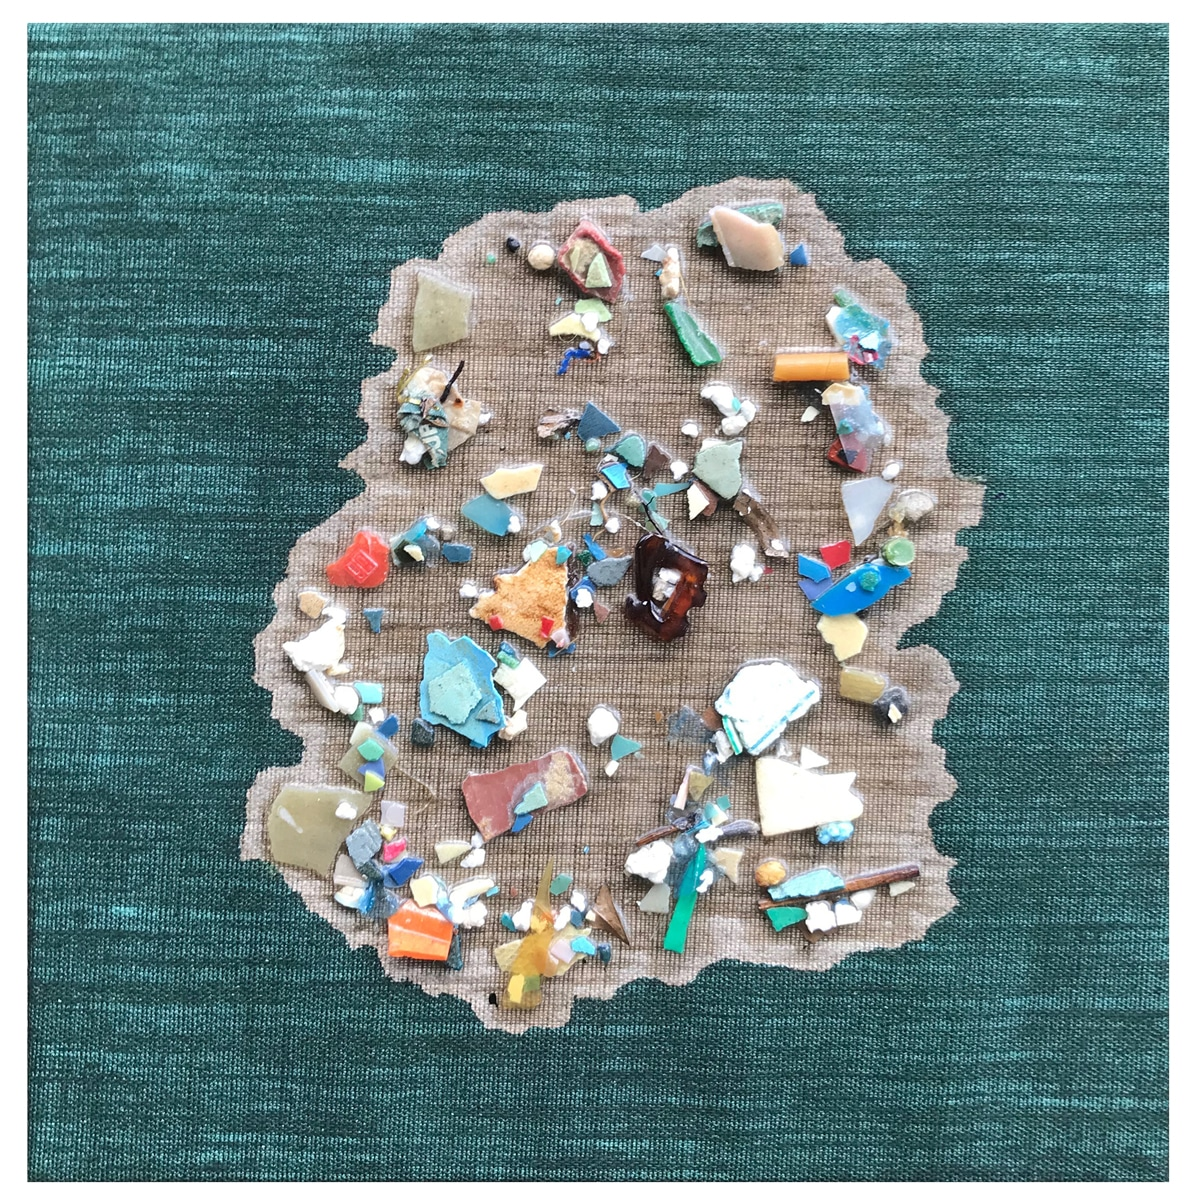 Pacific Garbage Patch Study #10